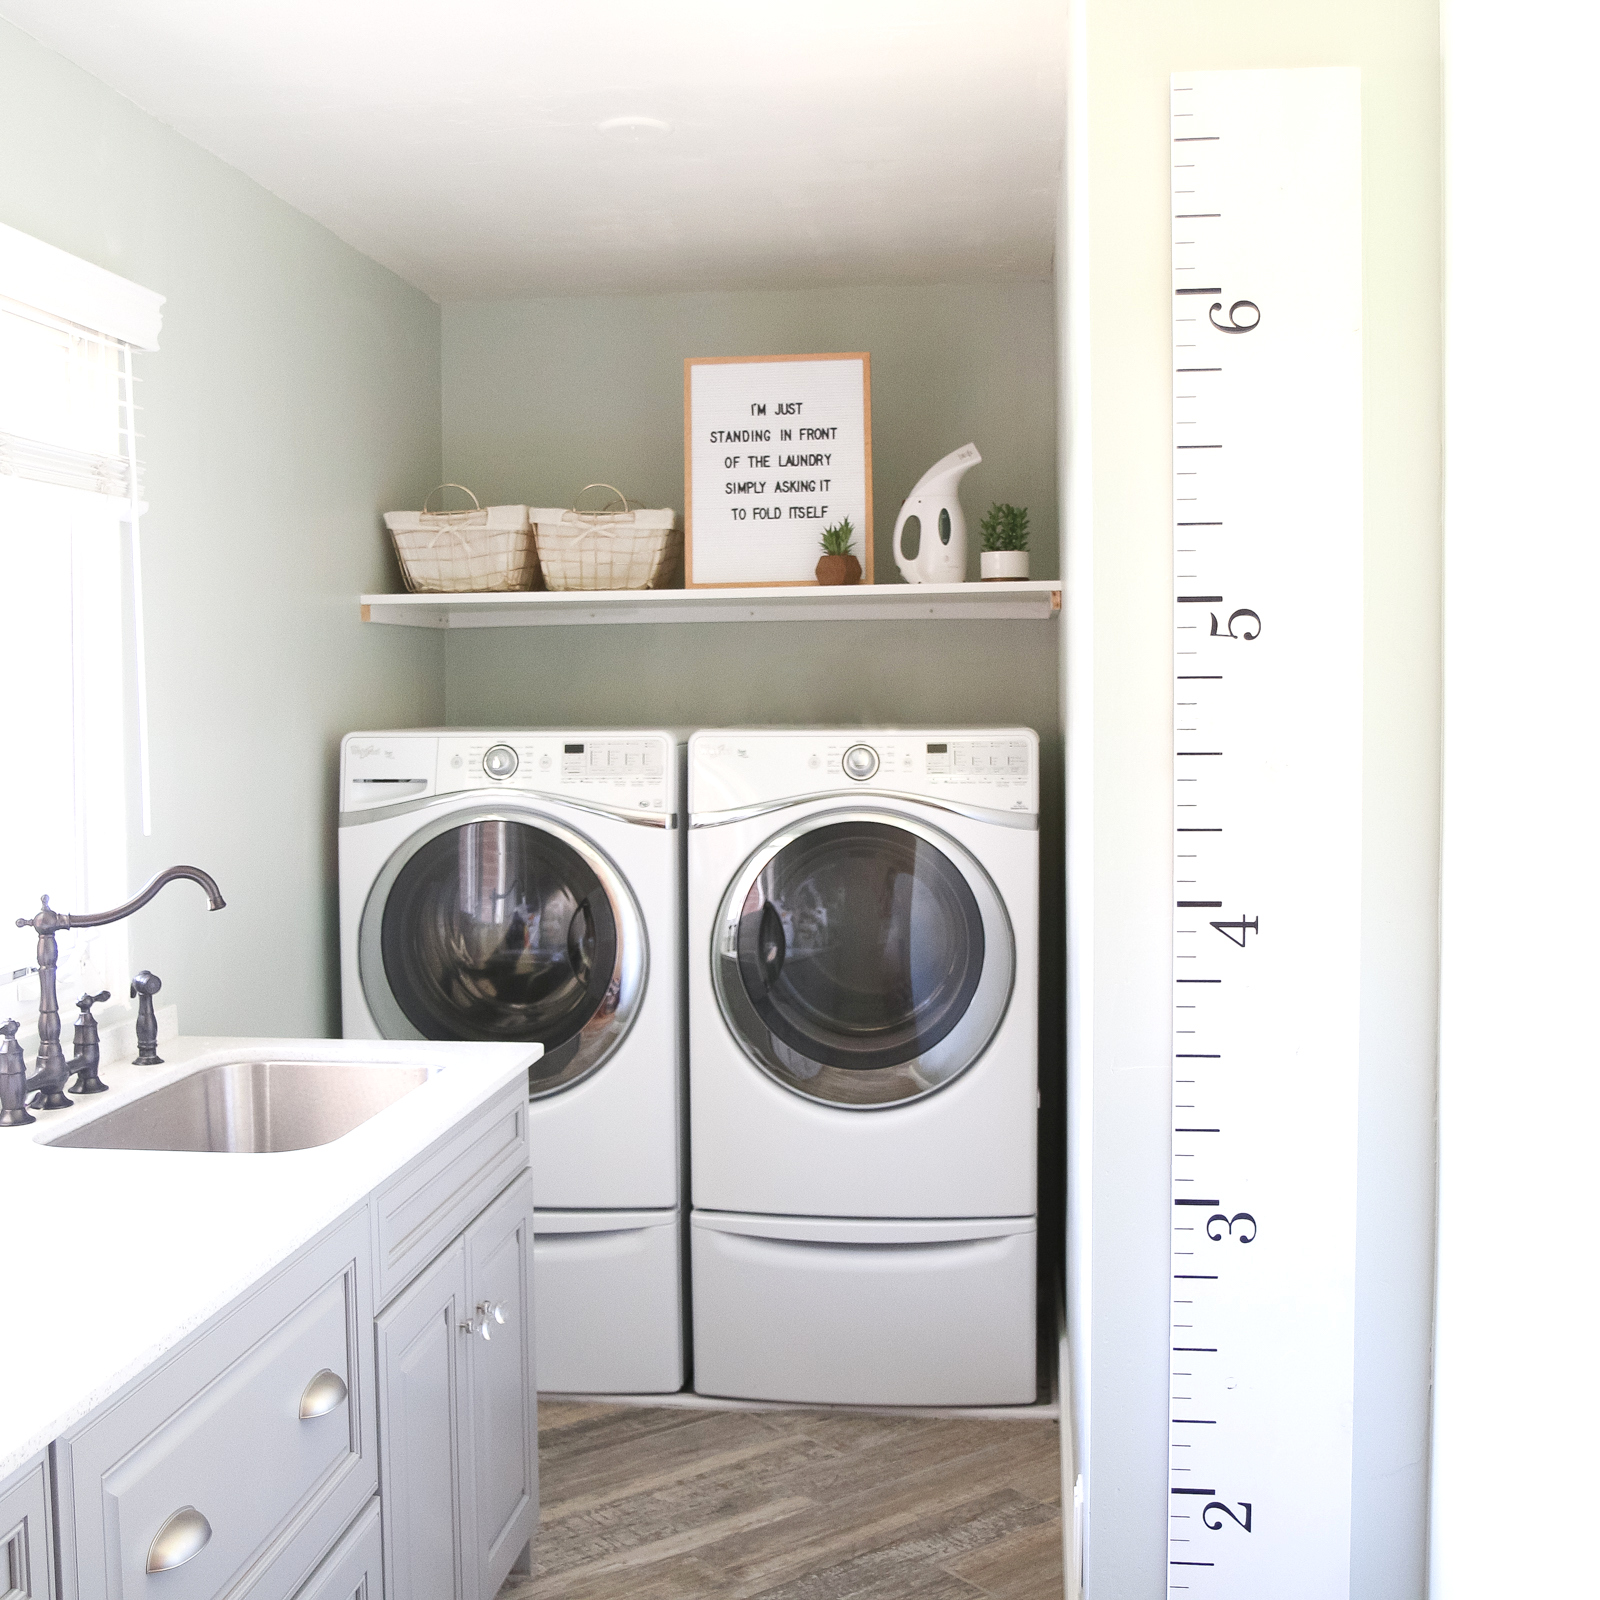 Our New Home Big Reveal: Functional & Spacious Laundry Room Ideas by popular Utah blogger Sandy A La Mode